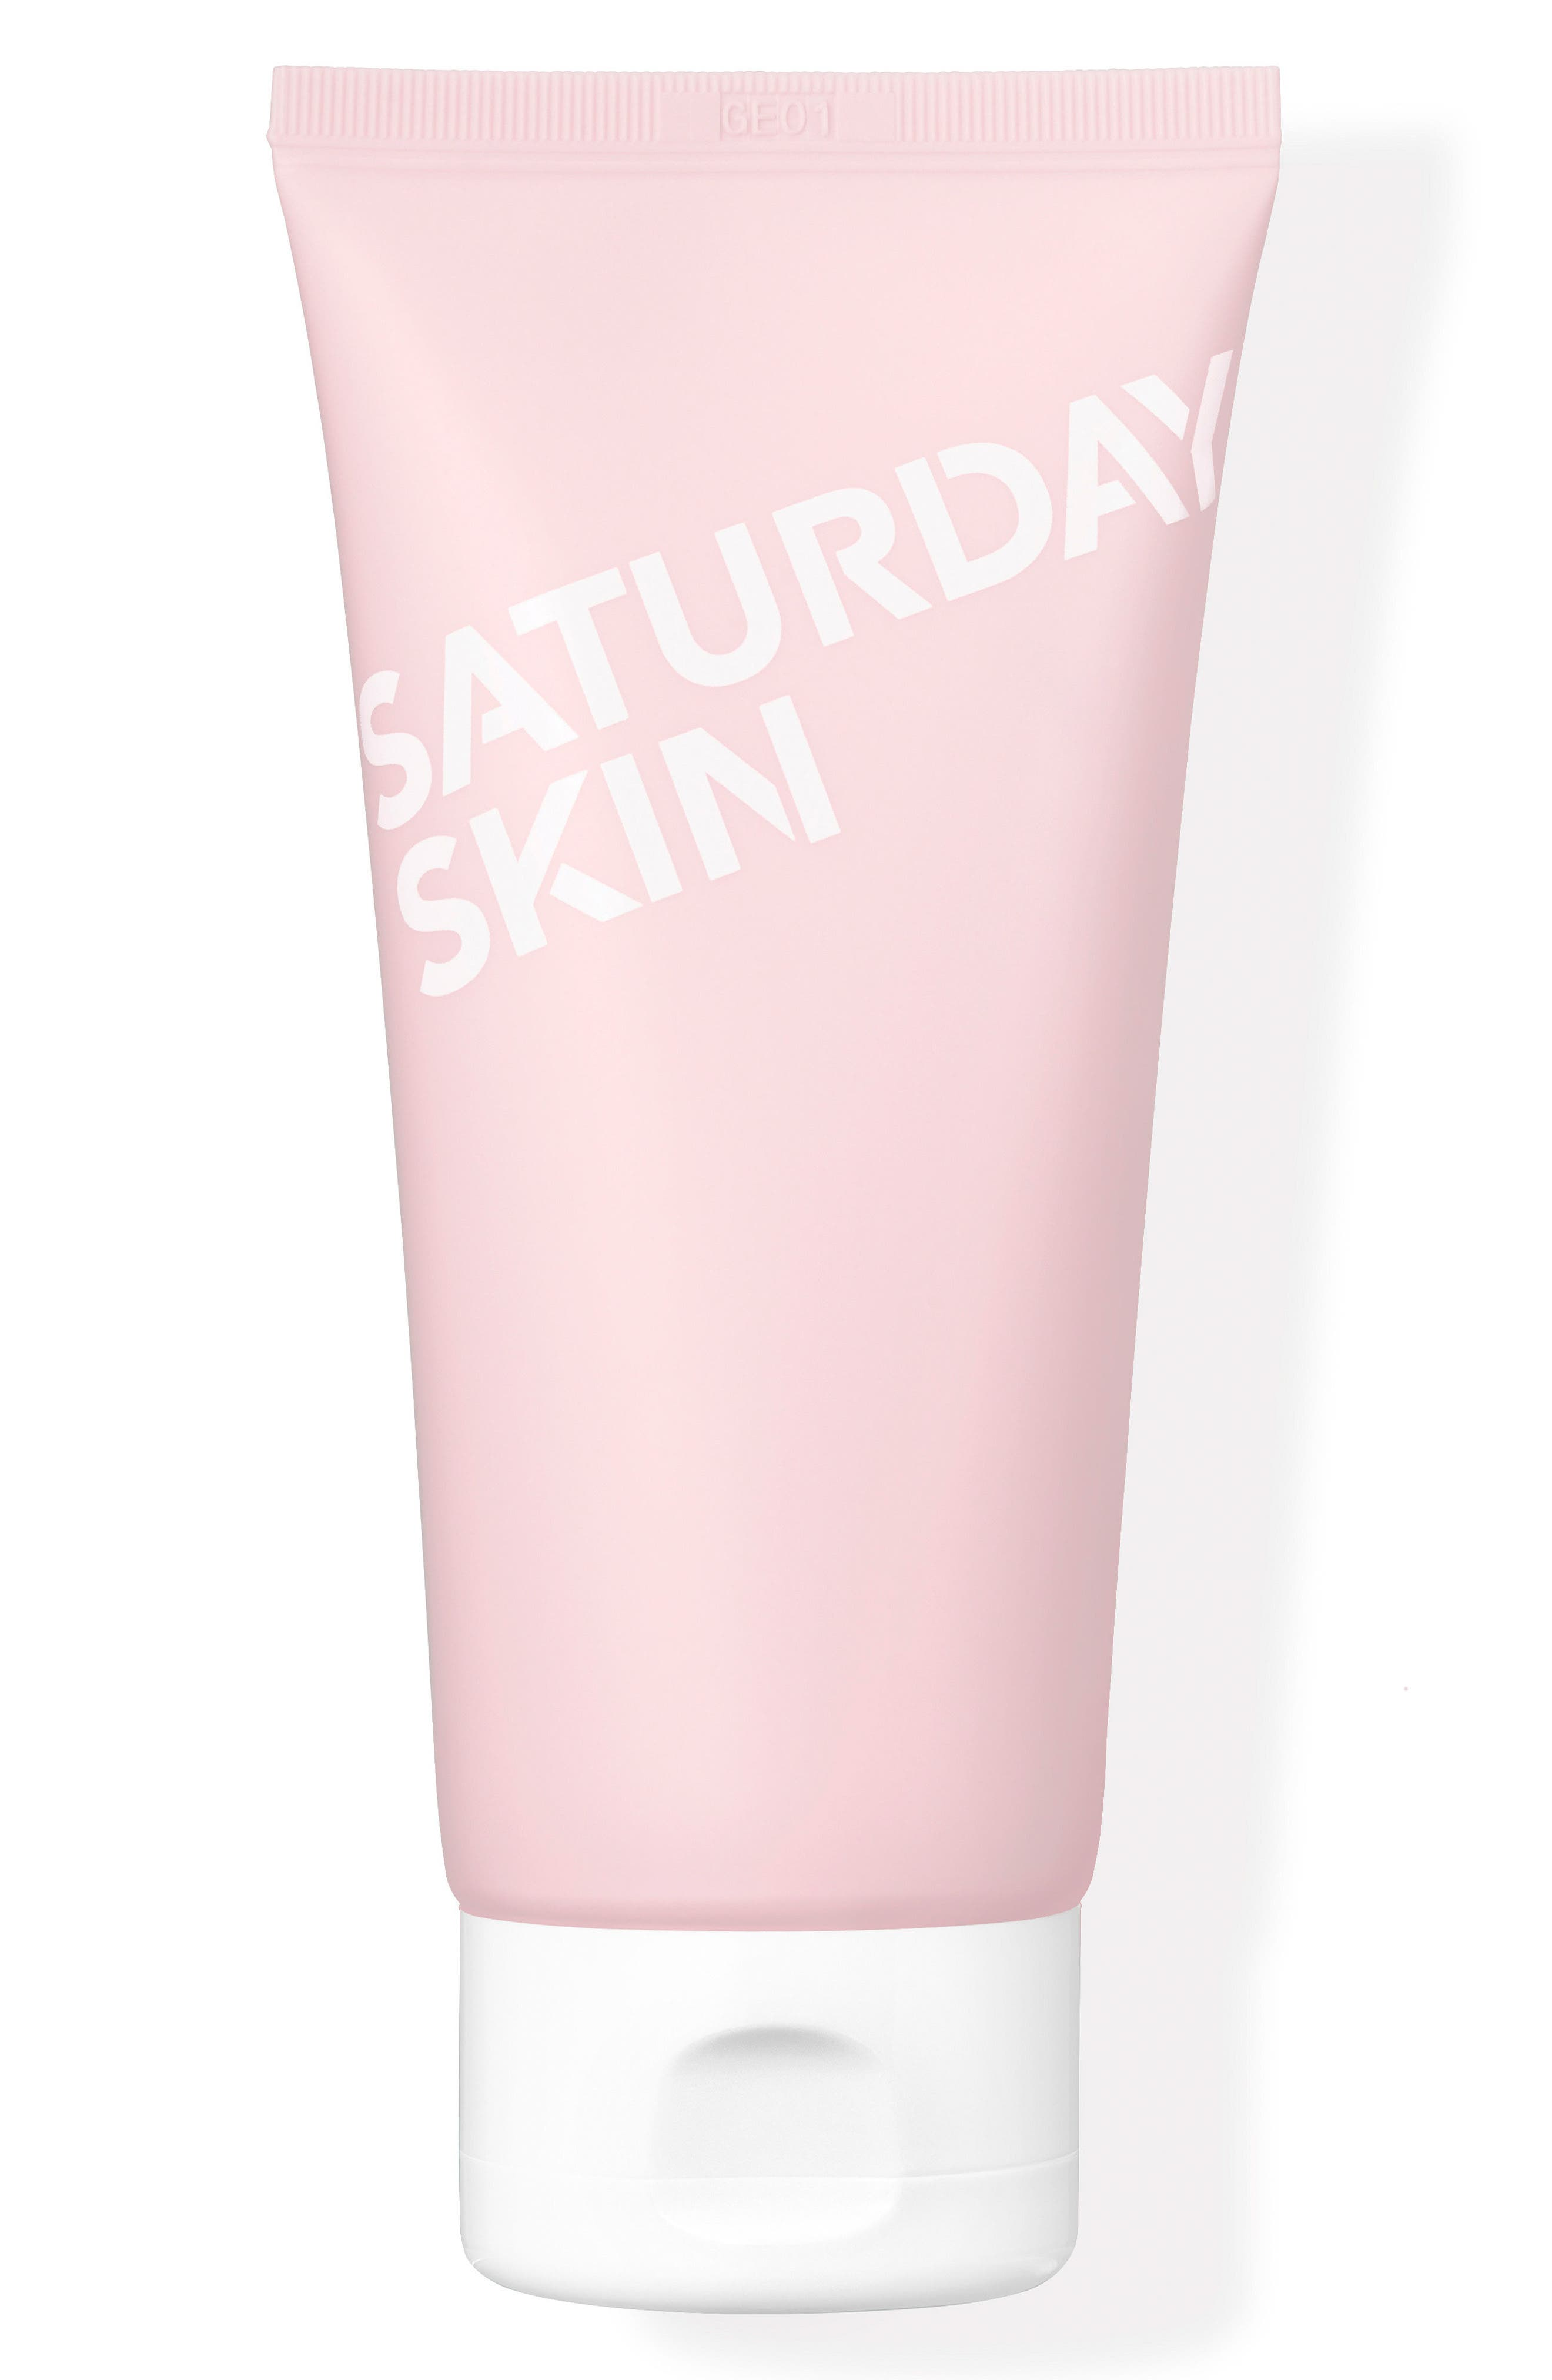 Rise + Shine Purifying Cleanser,                             Main thumbnail 1, color,                             NO COLOR